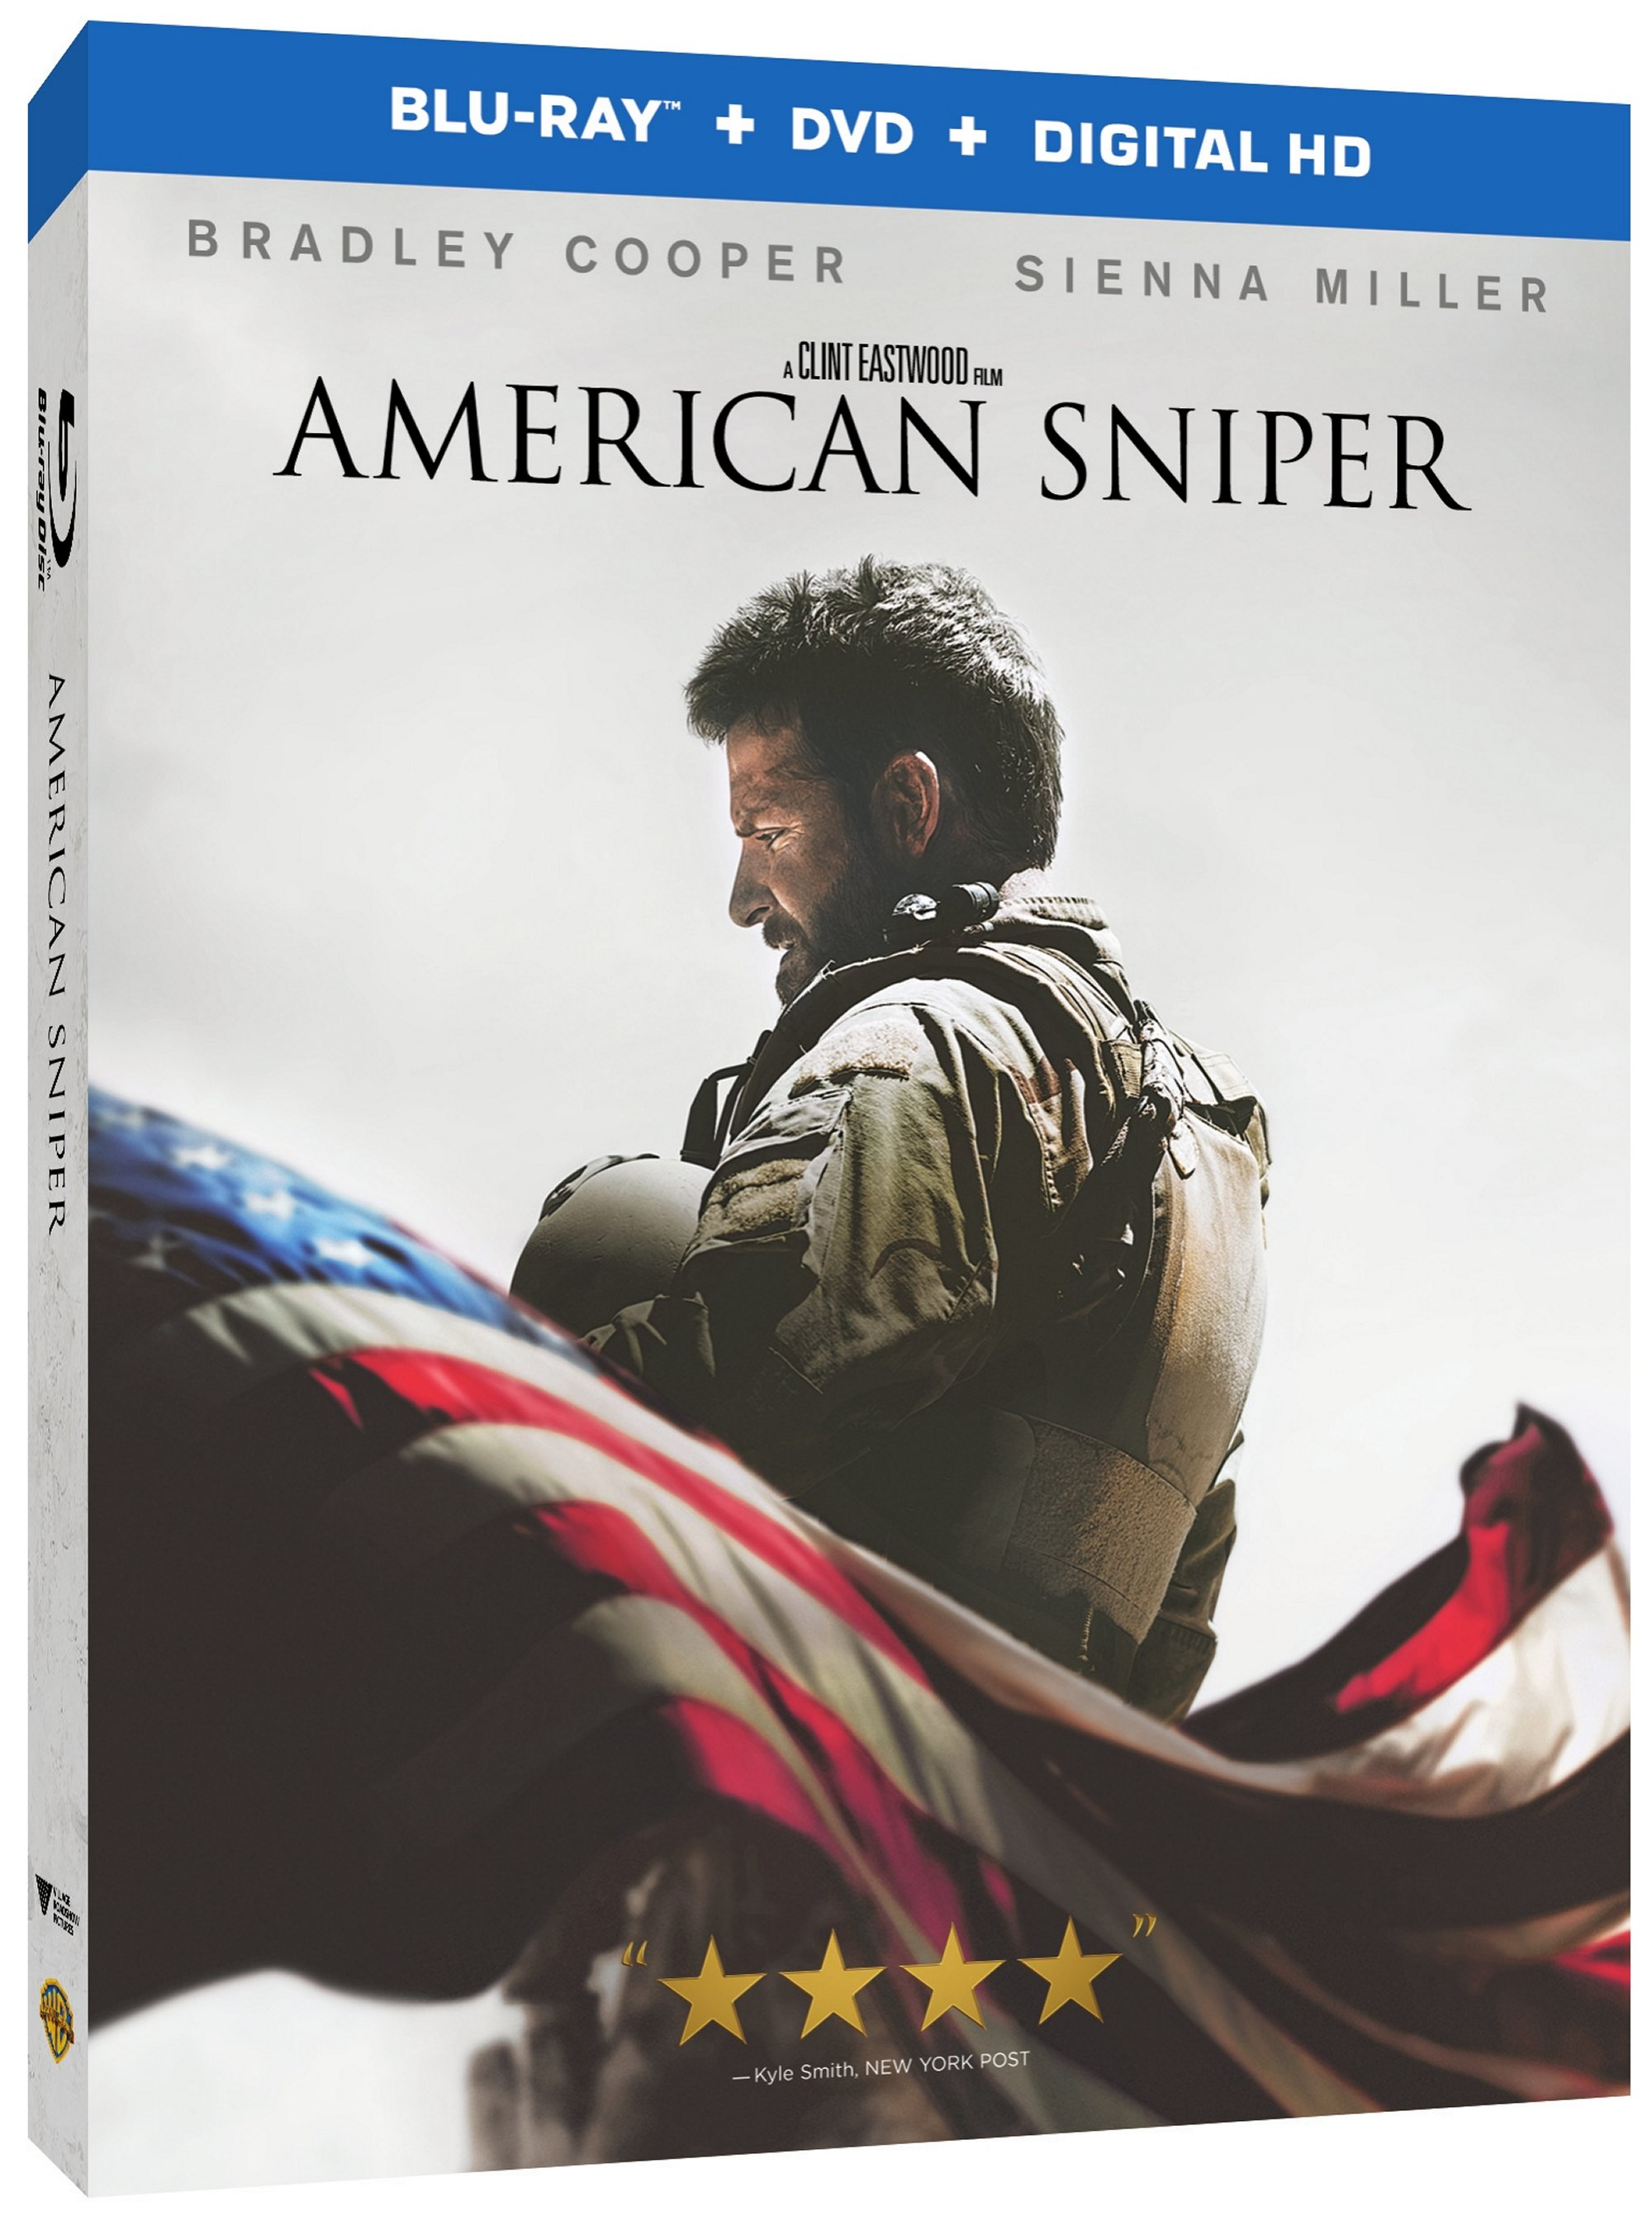 American Sniper Blu-ray Review